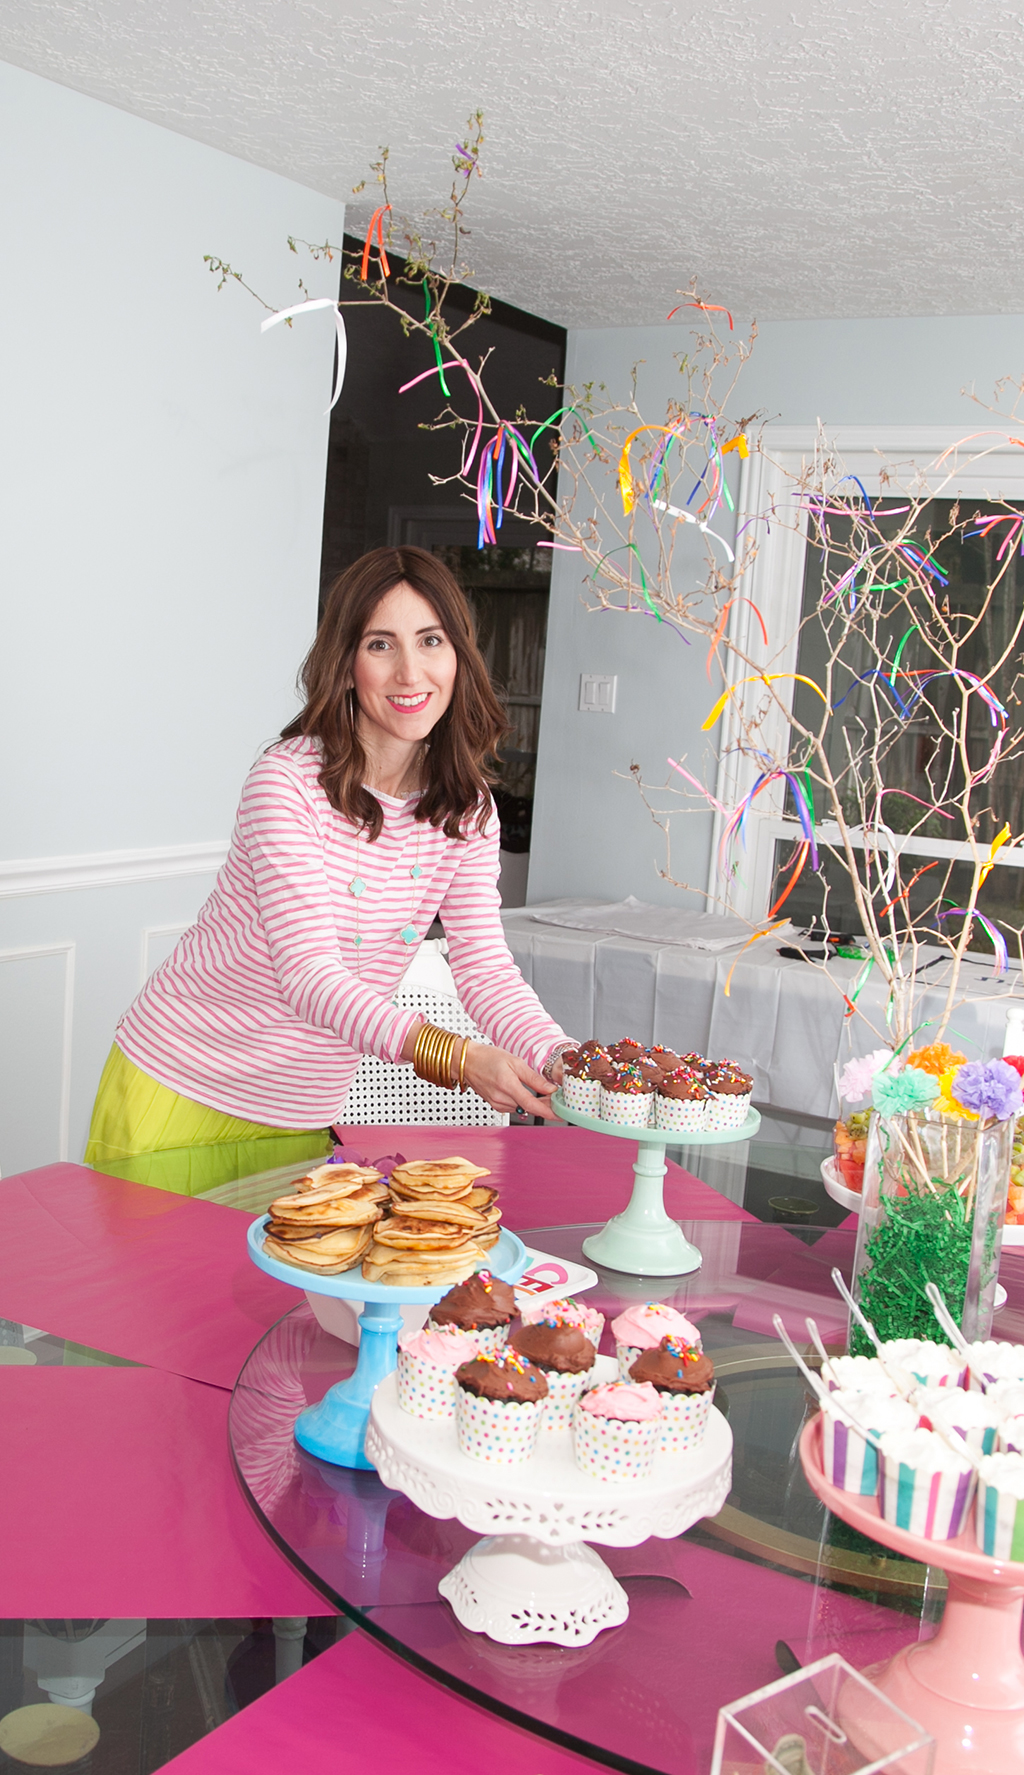 Setting up Dessert Table for Nine Year Old Girl's Birthday Party by Yael from Jewish Latin Princess